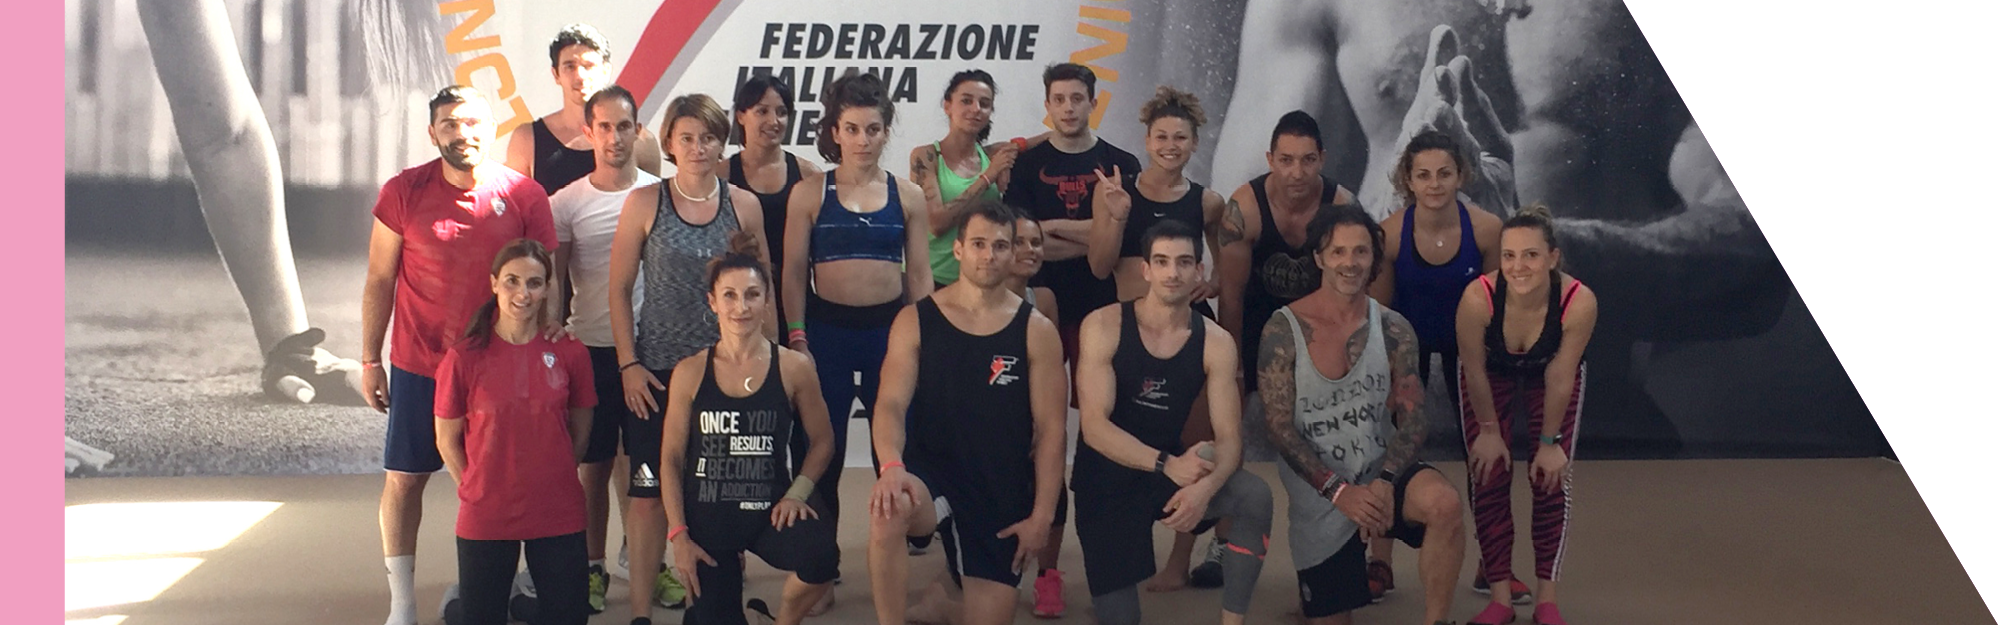 crunch competition rimini wellness golden partner